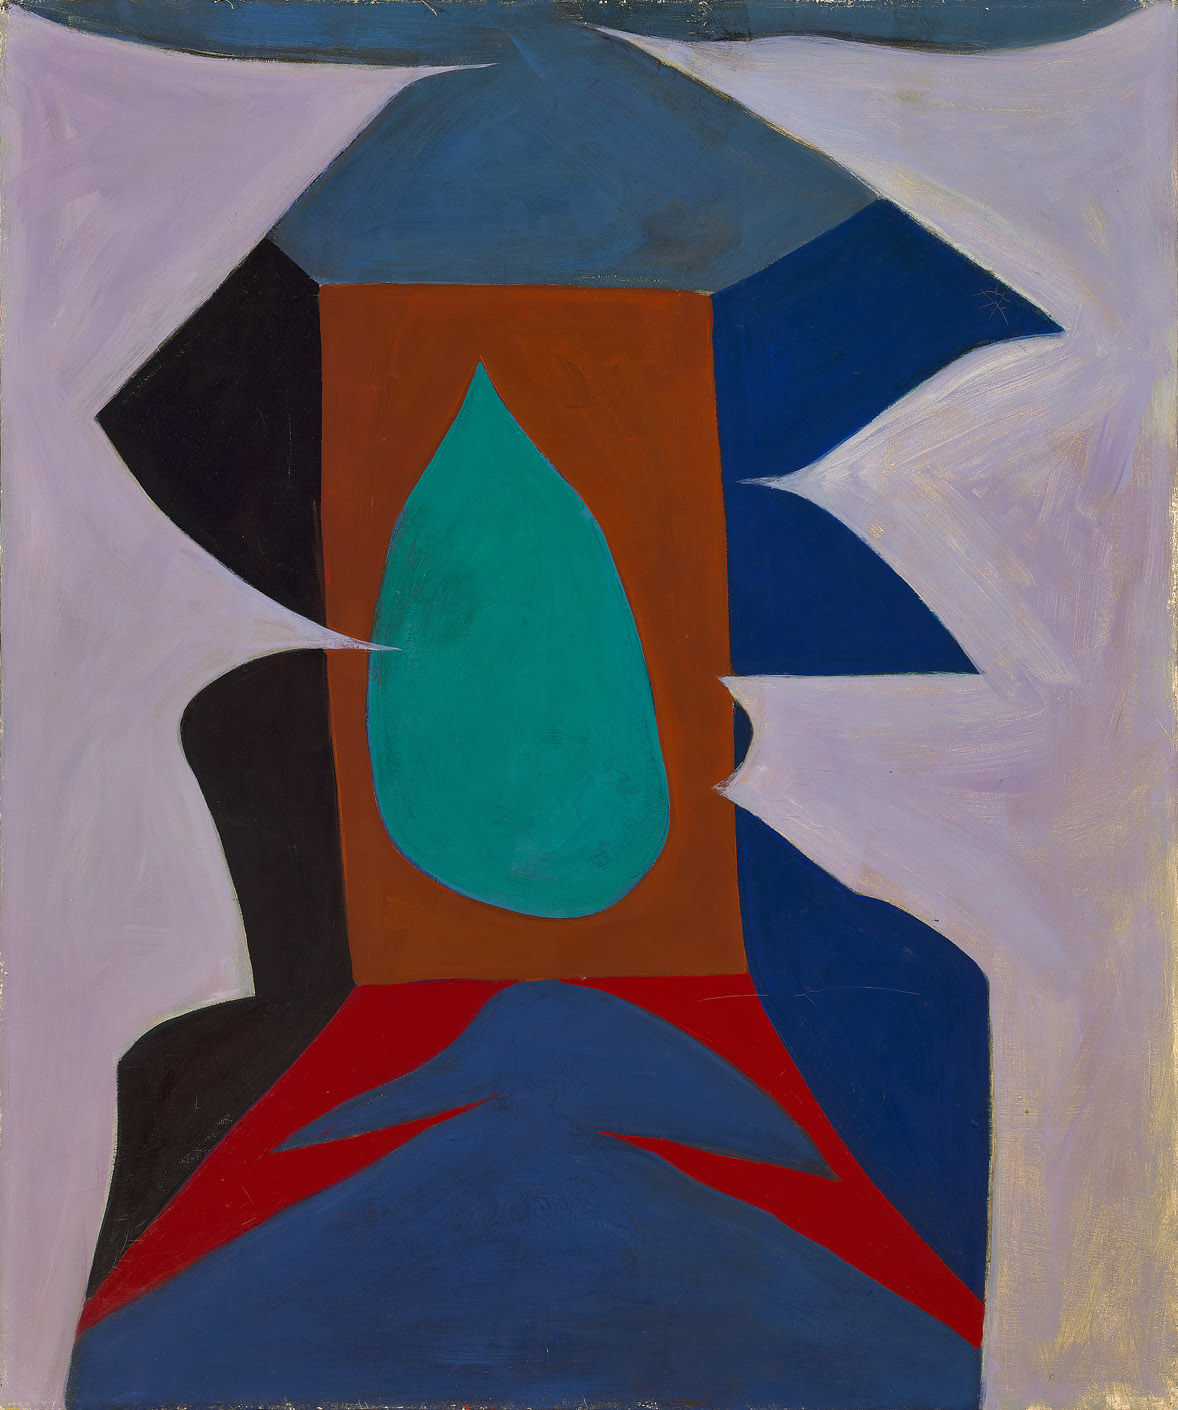 Untitled , 1950  oil on canvas 36 x 30 inches; 91.4 x 76.2 centimeters